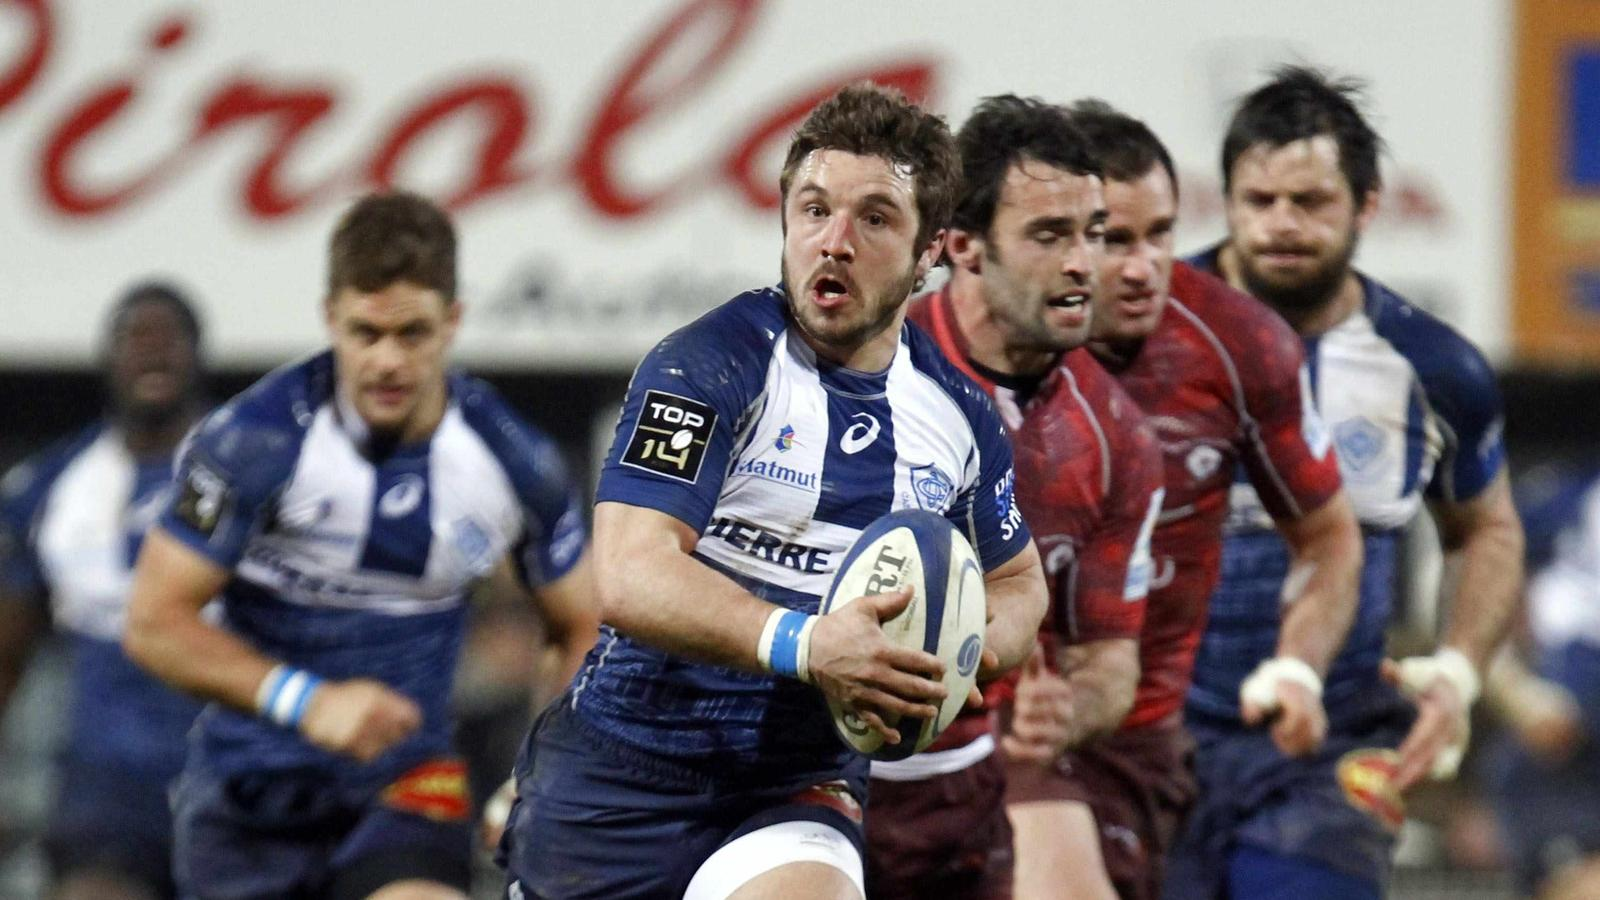 Rugby Top 14 Montpellier Castres Olympique en direct streaming live